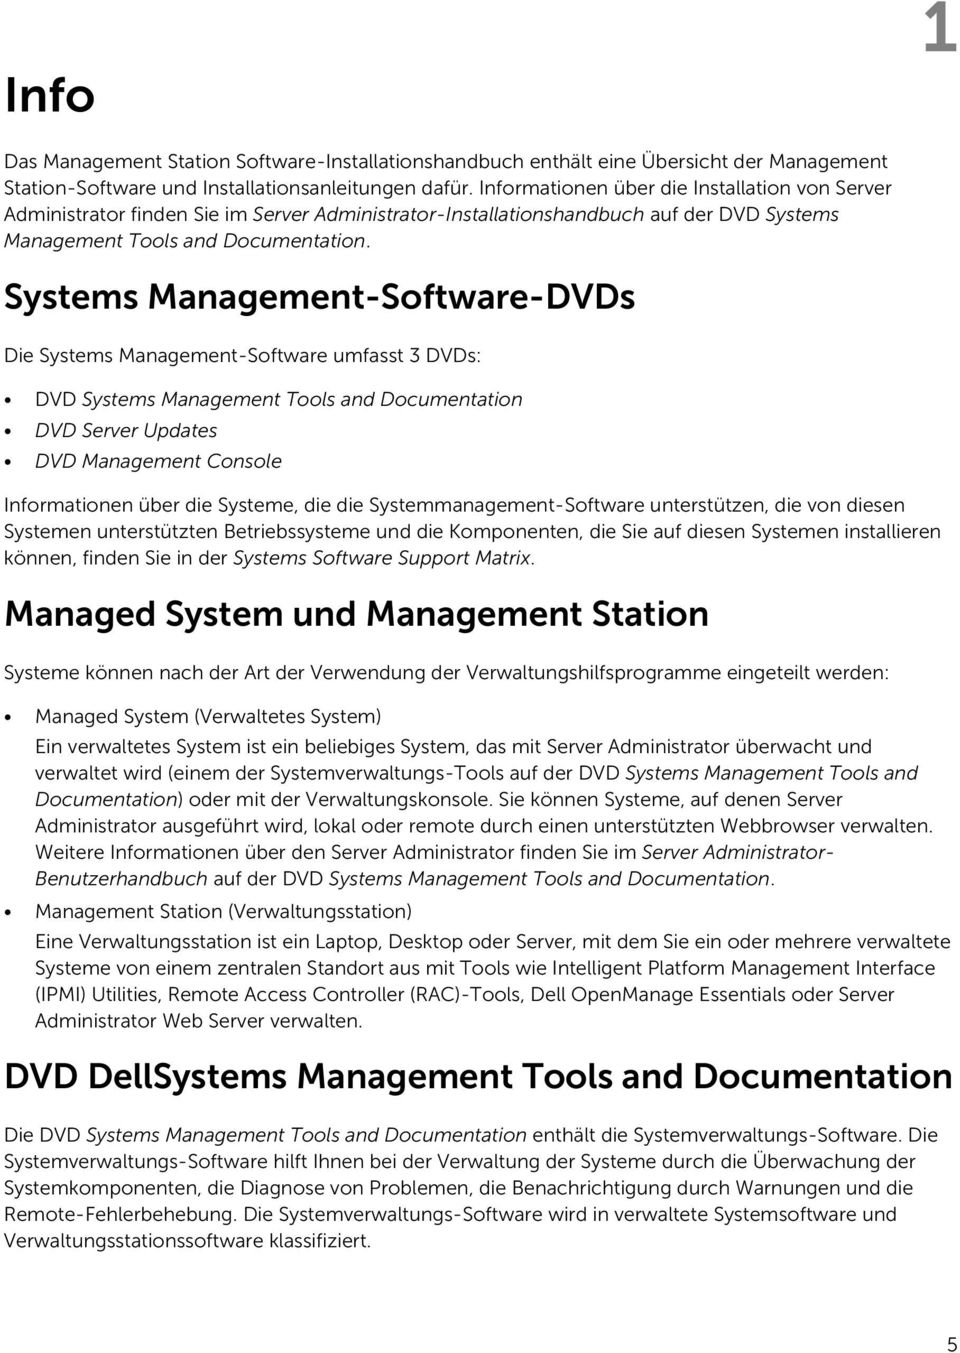 Systems Management-Software-DVDs Die Systems Management-Software umfasst 3 DVDs: DVD Systems Management Tools and Documentation DVD Server Updates DVD Management Console Informationen über die